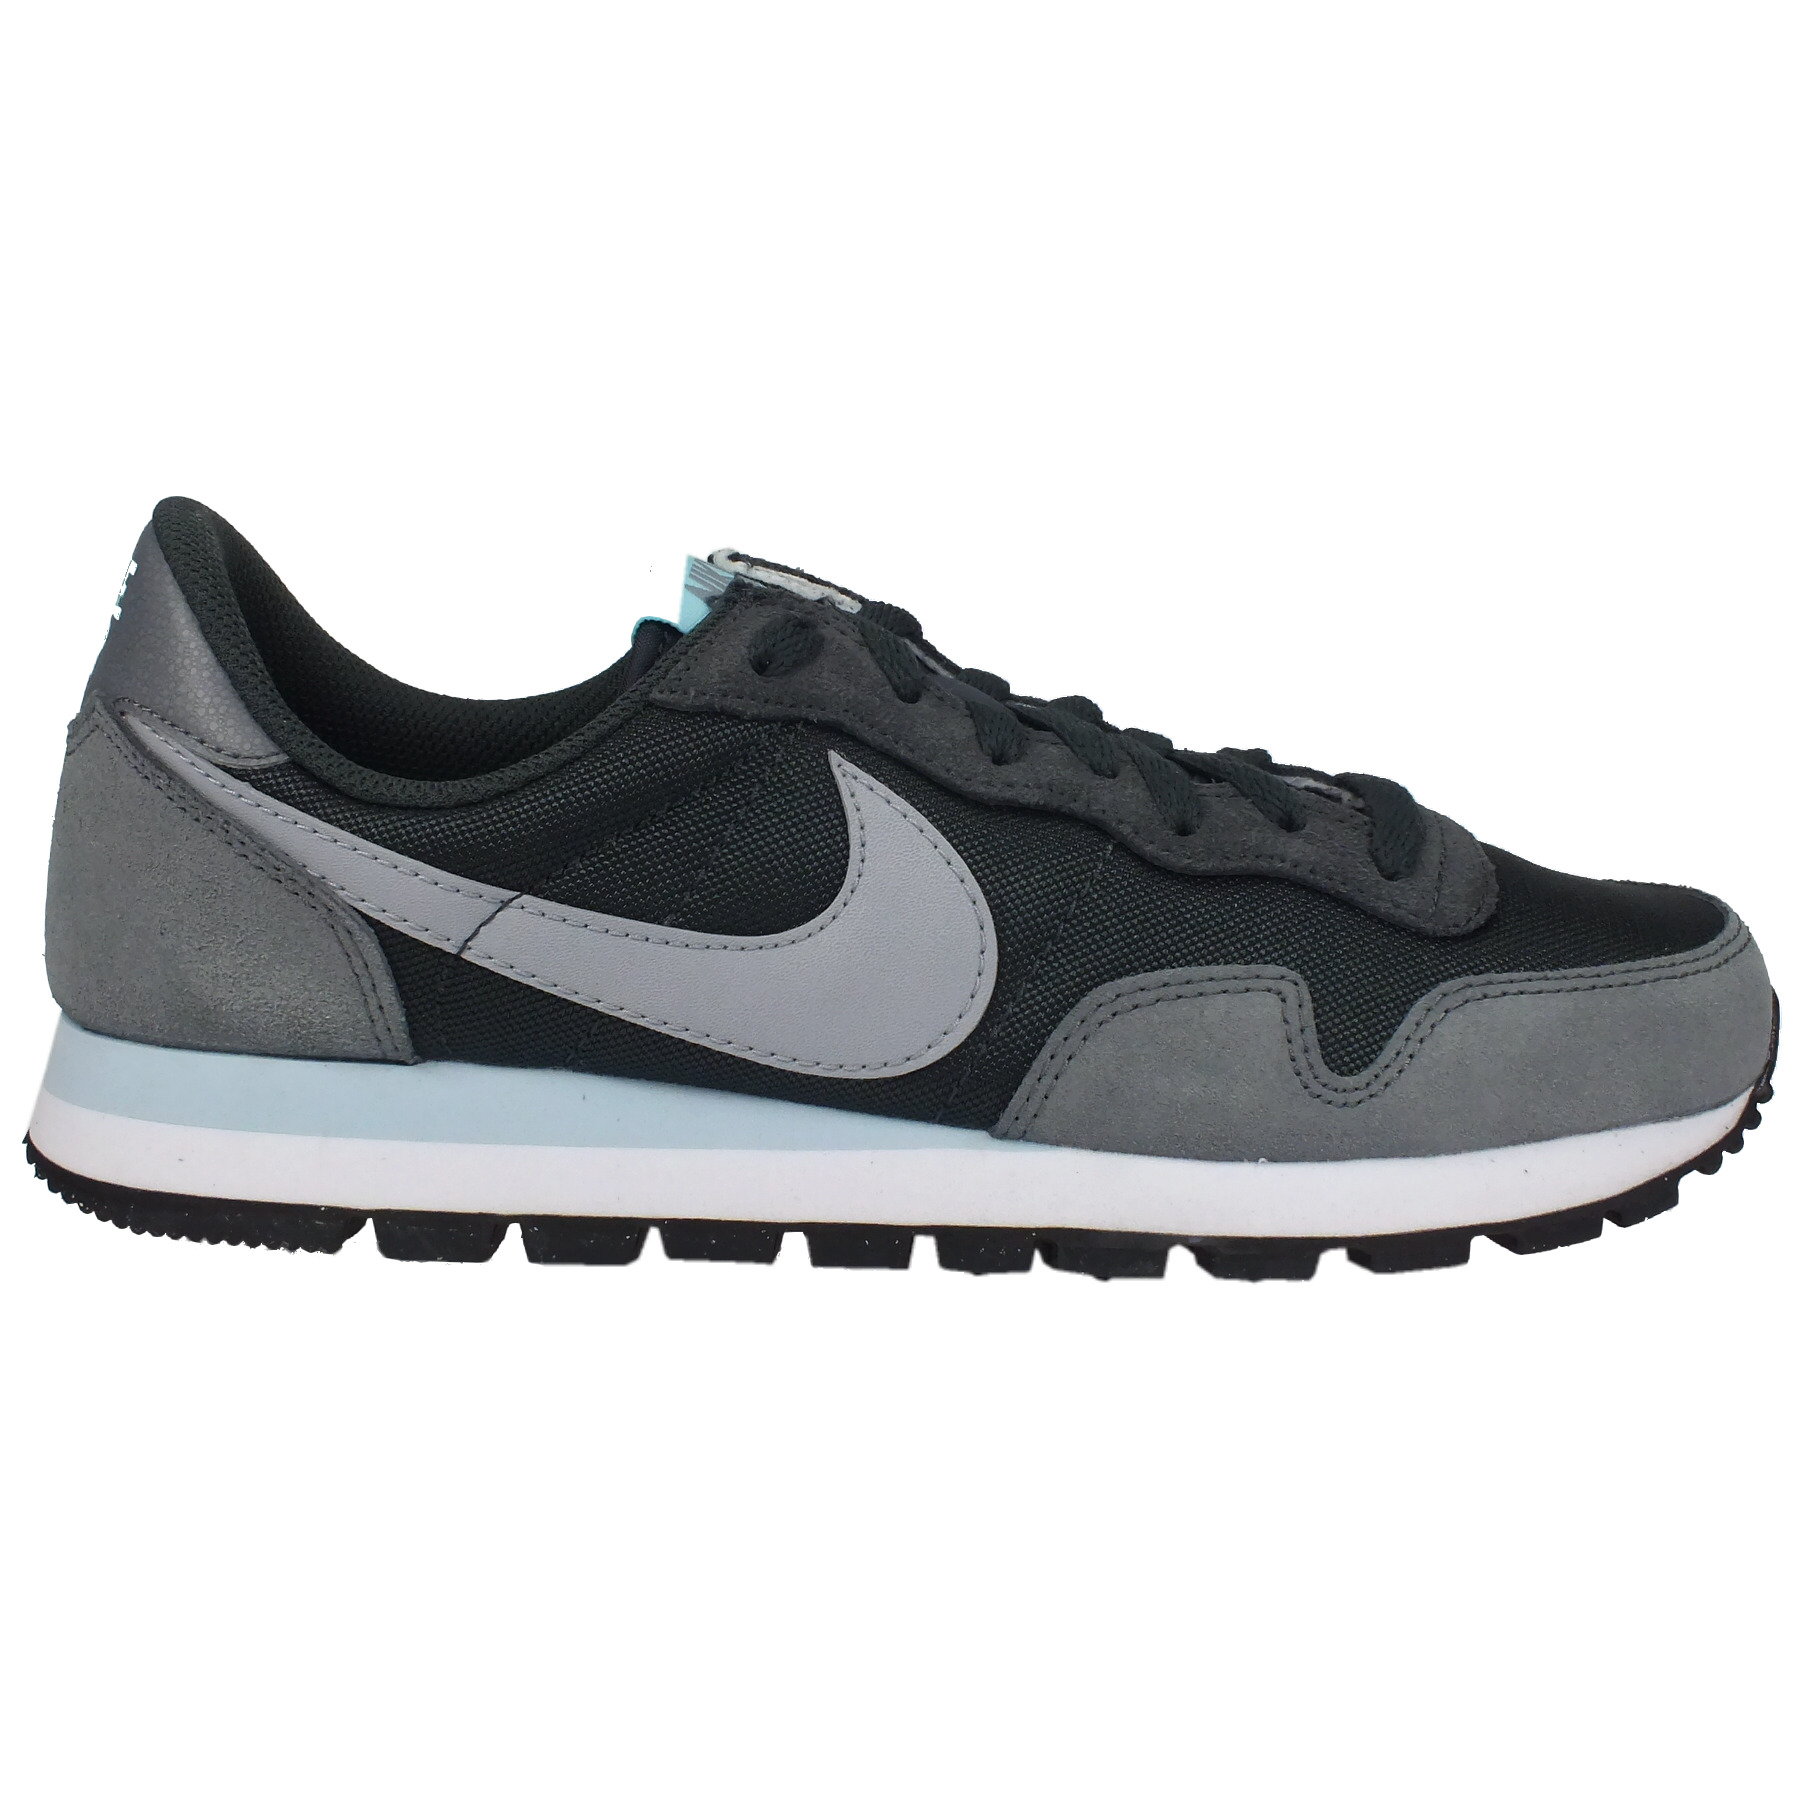 nike air pegasus 83 schuhe laufschuhe turnschuhe sneaker. Black Bedroom Furniture Sets. Home Design Ideas